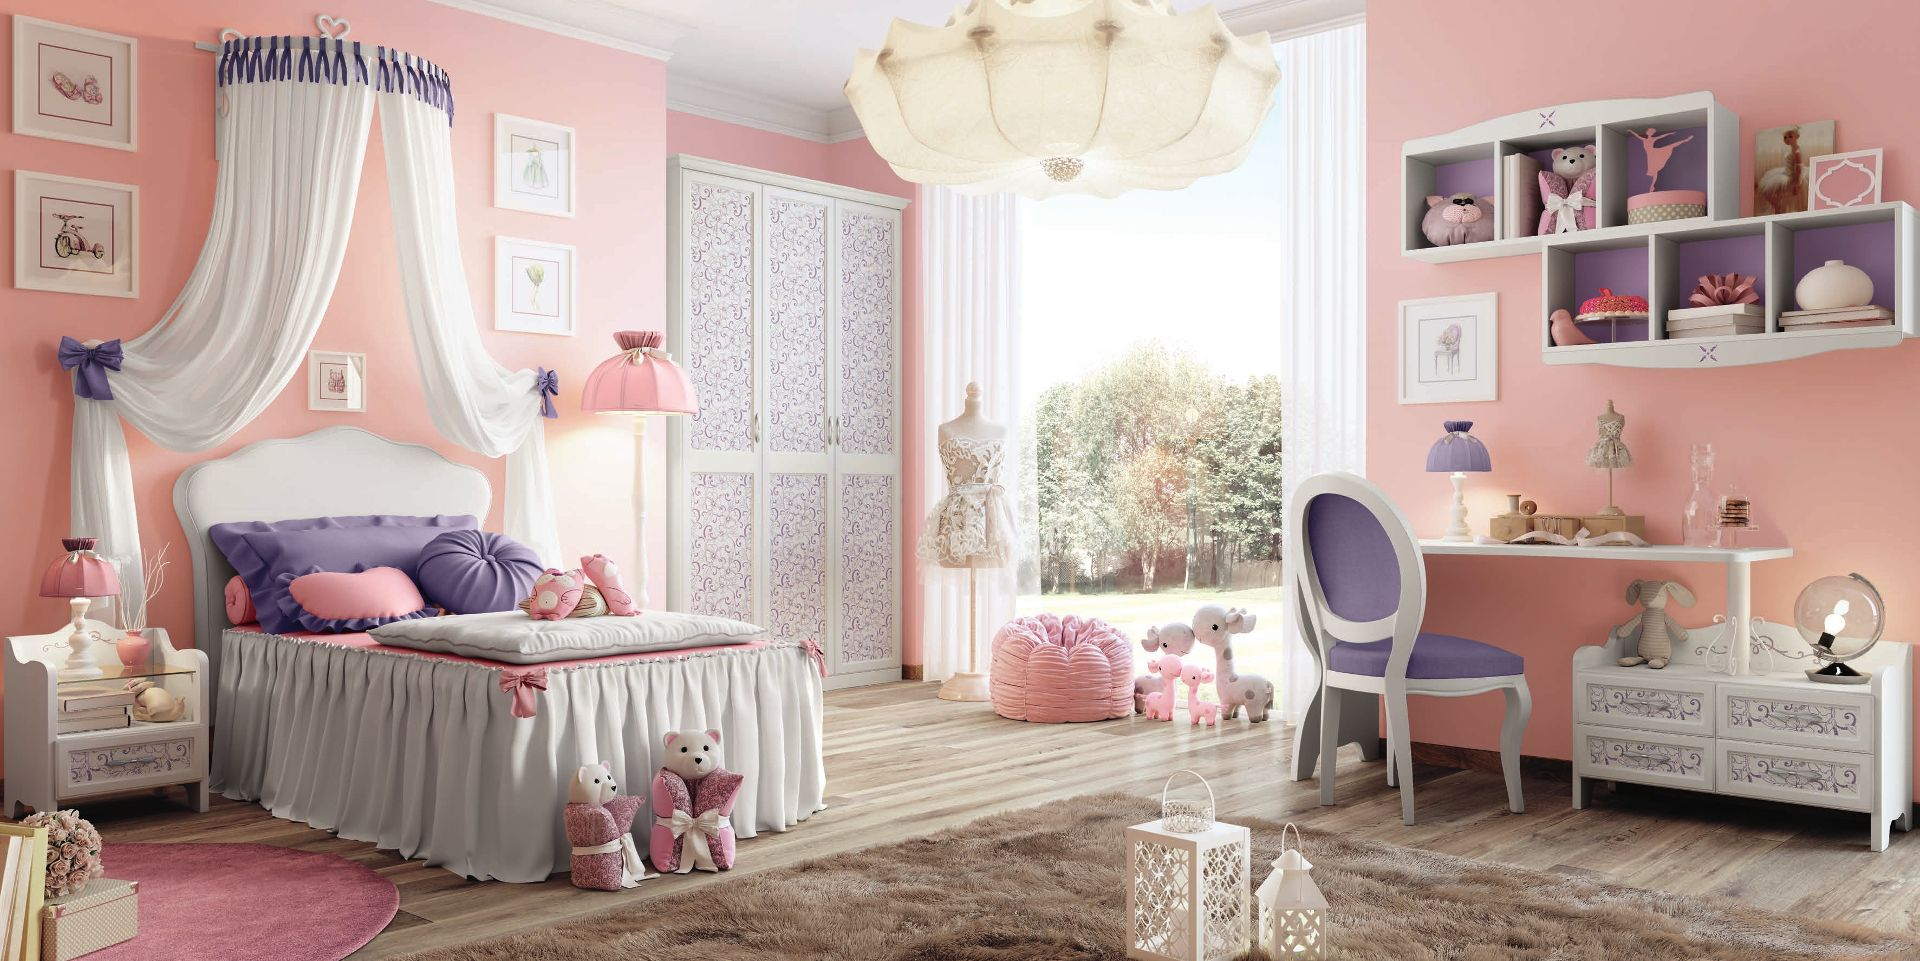 Effedue Camerette ~ Luxury collection by effedue camerette effedue camerette is an